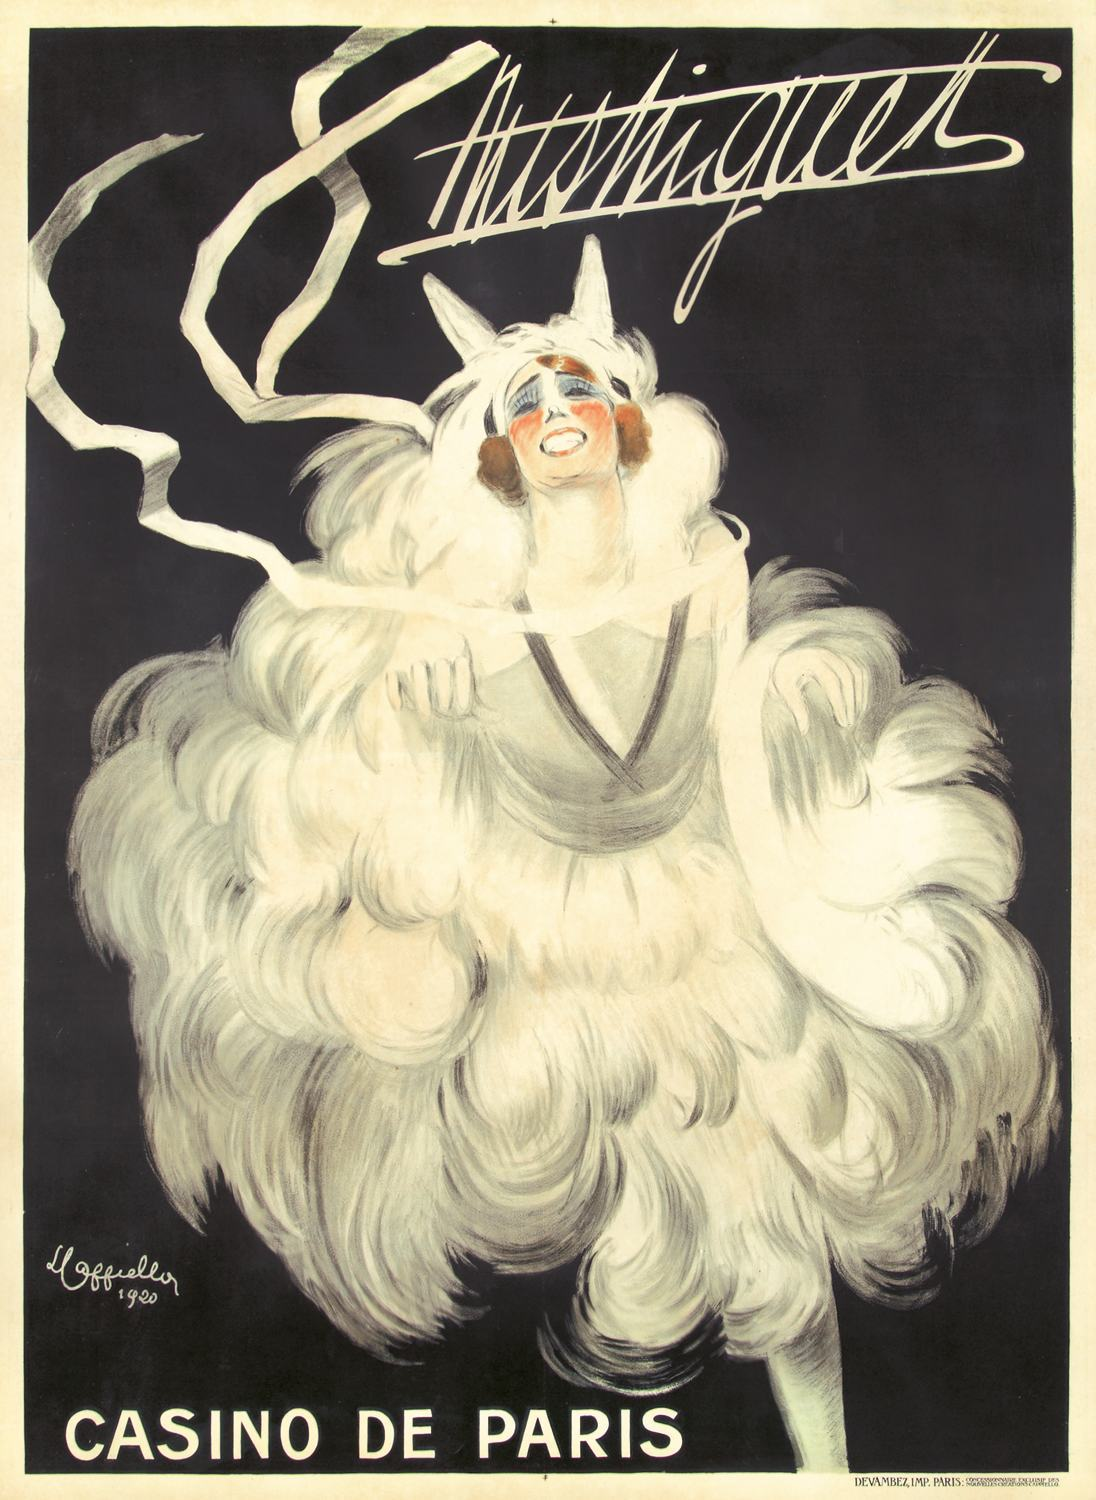 Mistinguett by Leonetto Cappiello, 1920